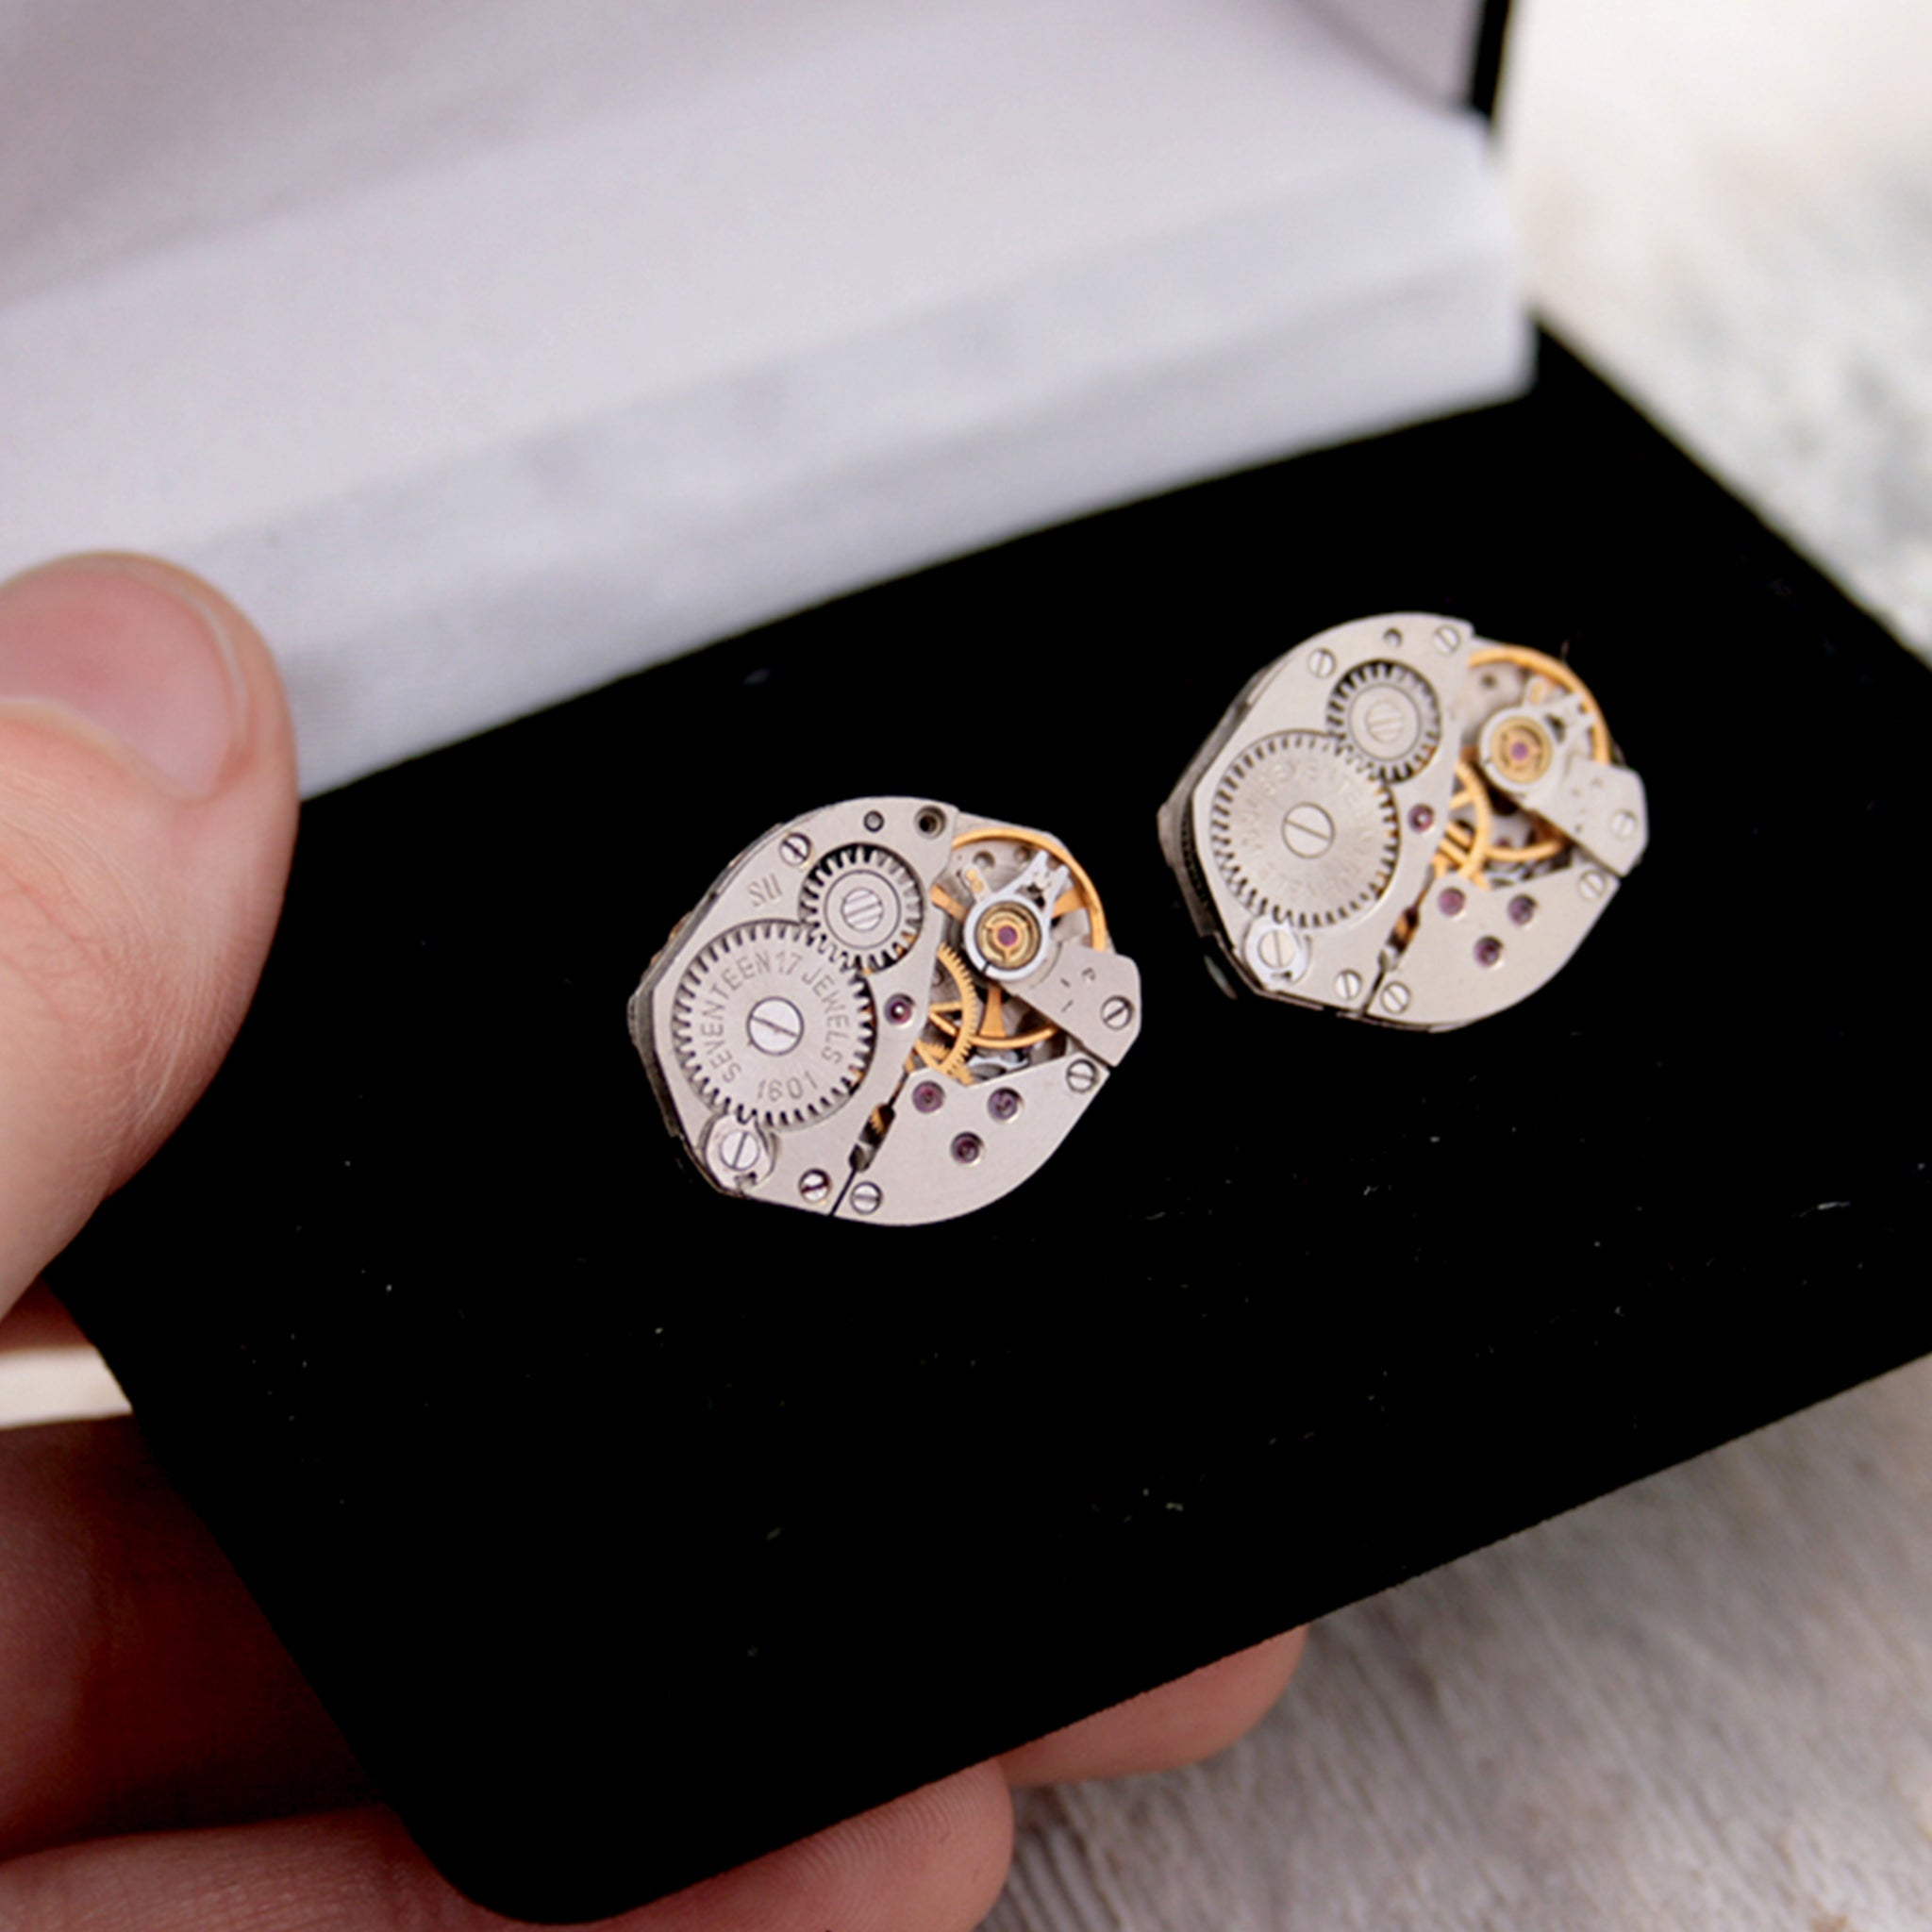 steampunk cufflinks for men featuring antique watch movements in black velour box